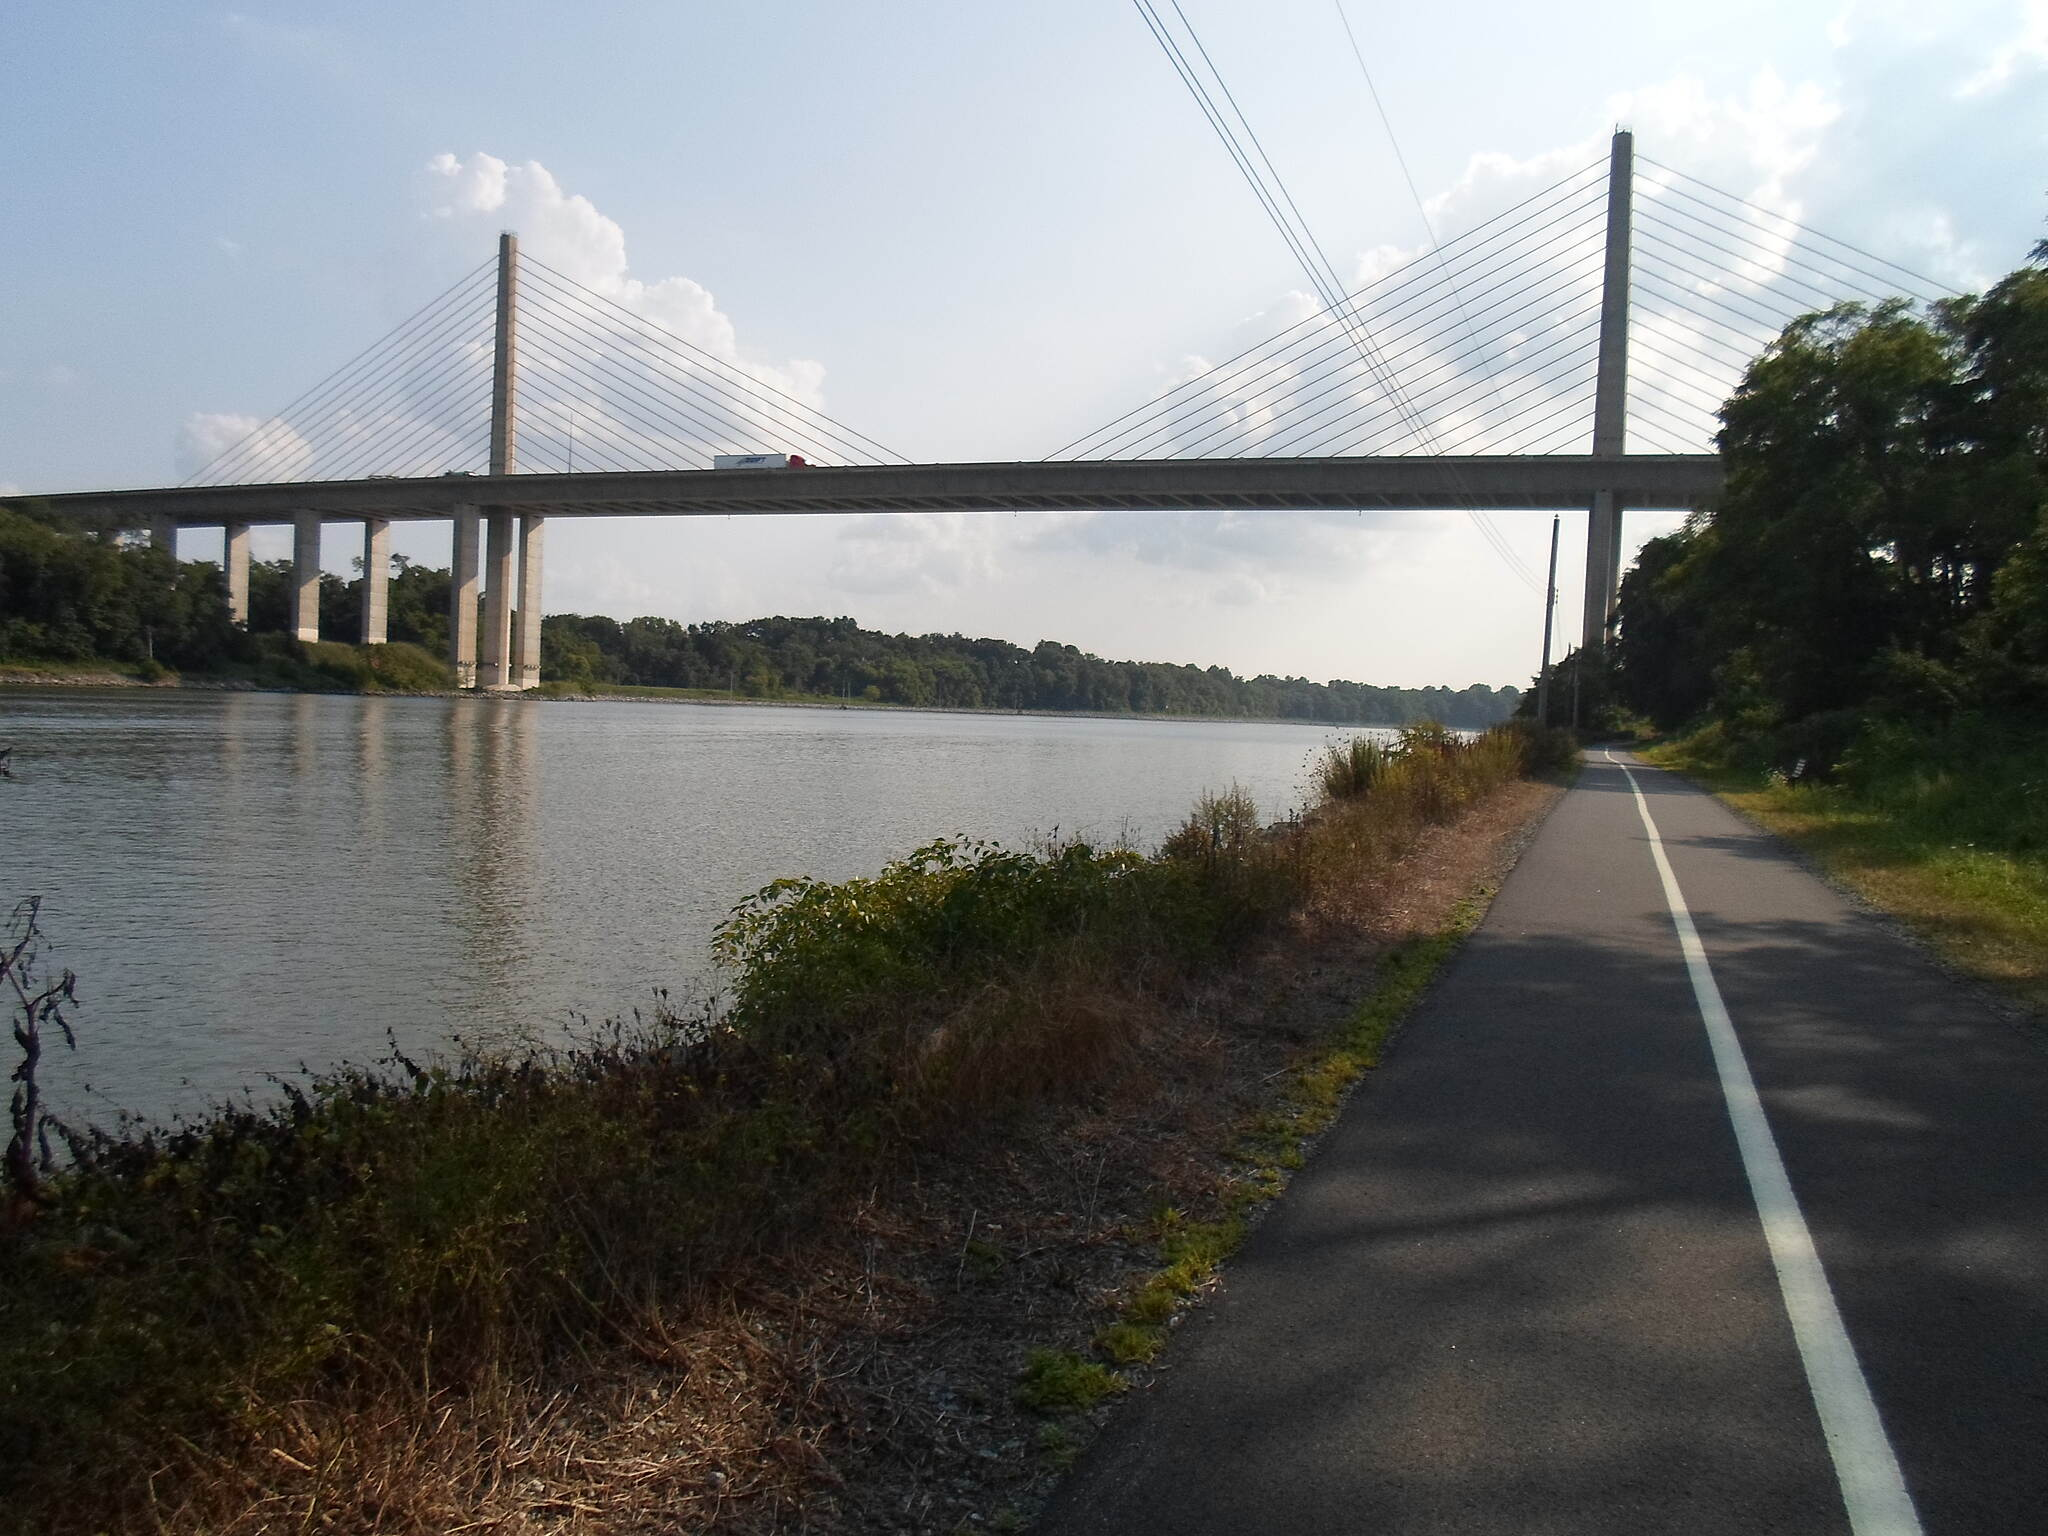 Michael Castle Trail Michael Castle Trail The Route 1 bridge, seen against a late summer sky. Taken August 2014.